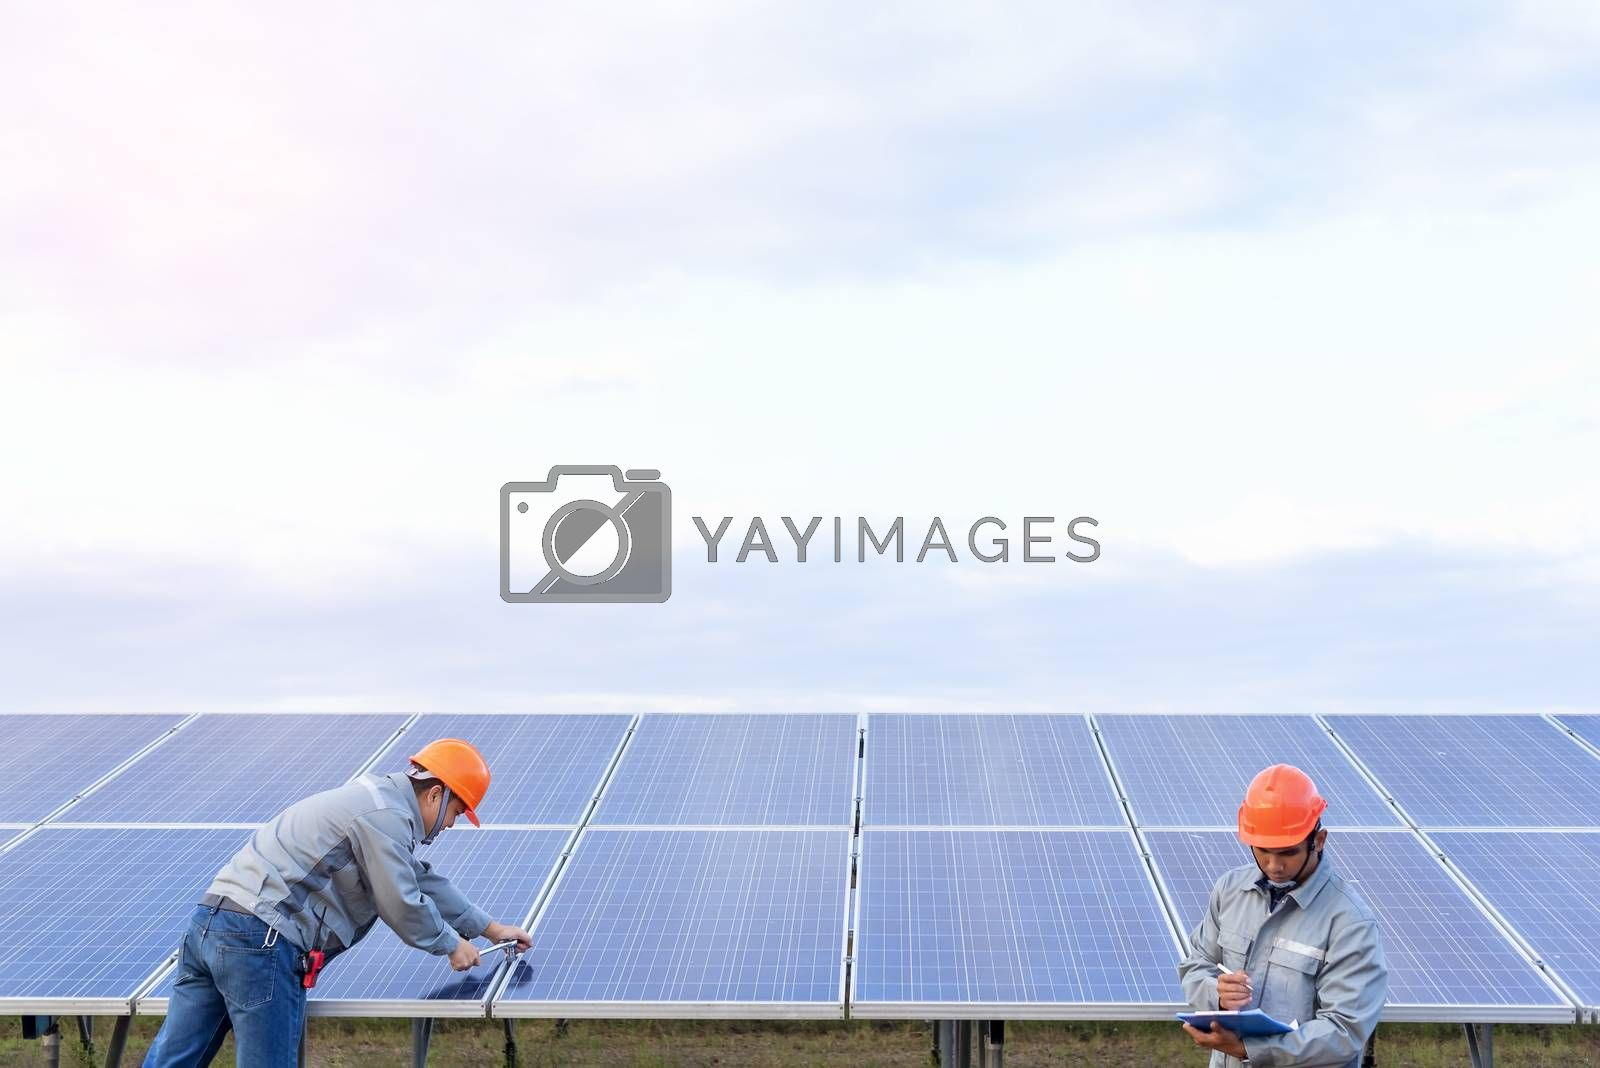 The engineering team is working on the equipment inspection and maintenance at the solar power plant. In order to be in normal operating condition